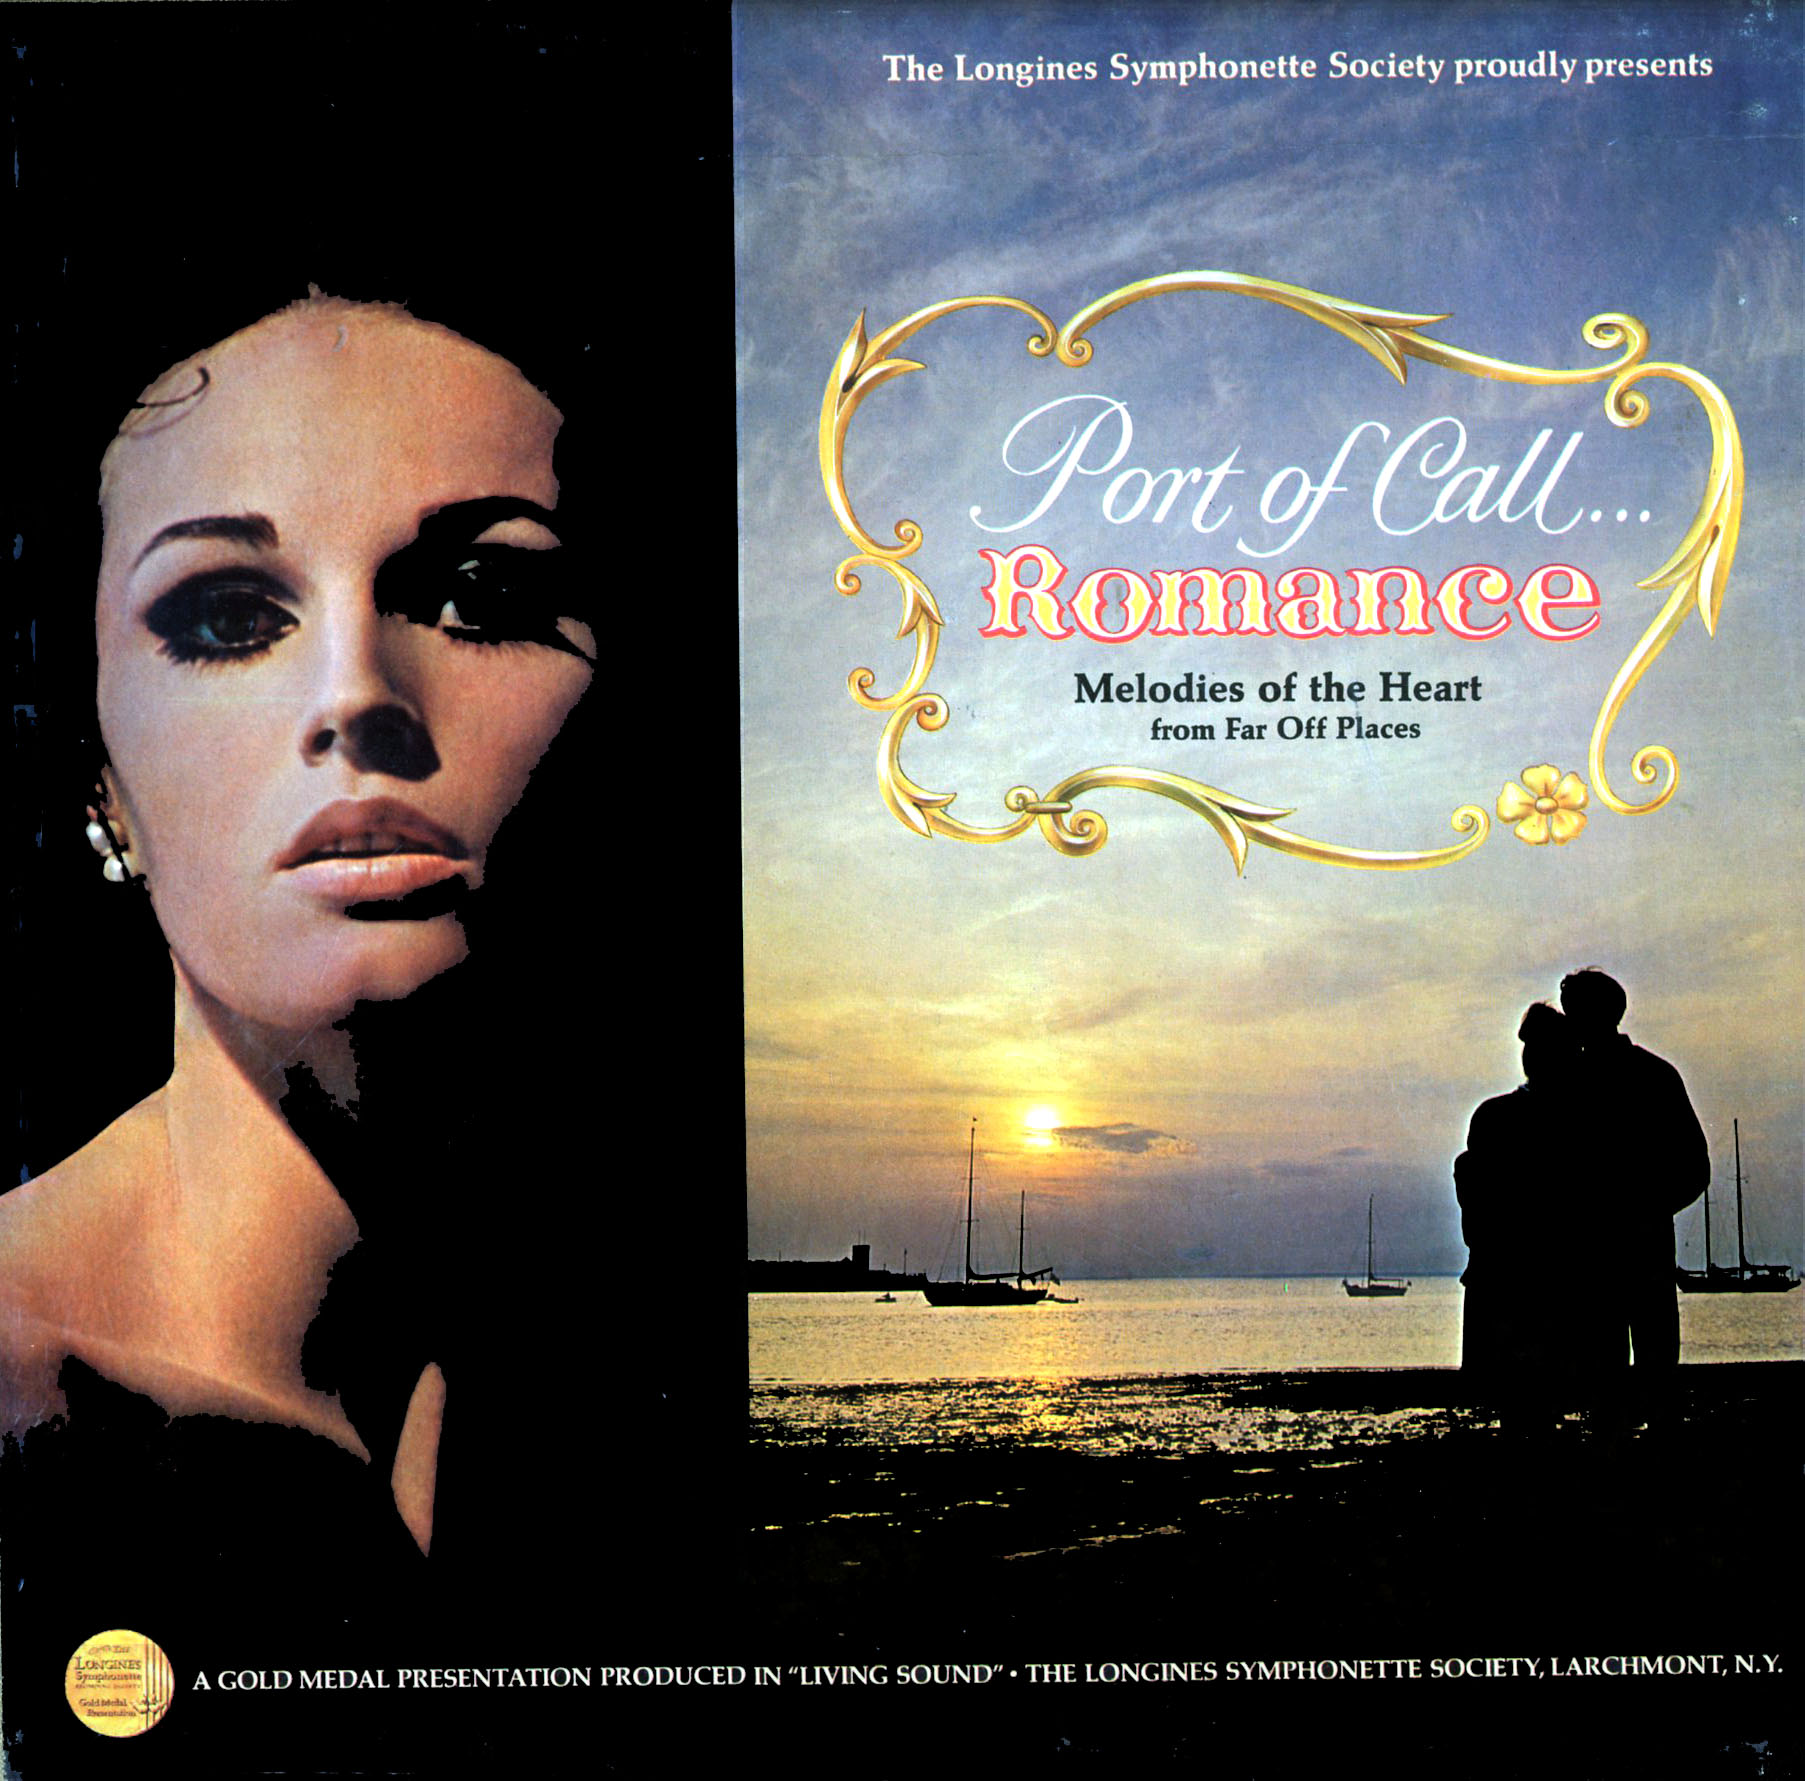 LWS278 - Port of Call Romance on CD